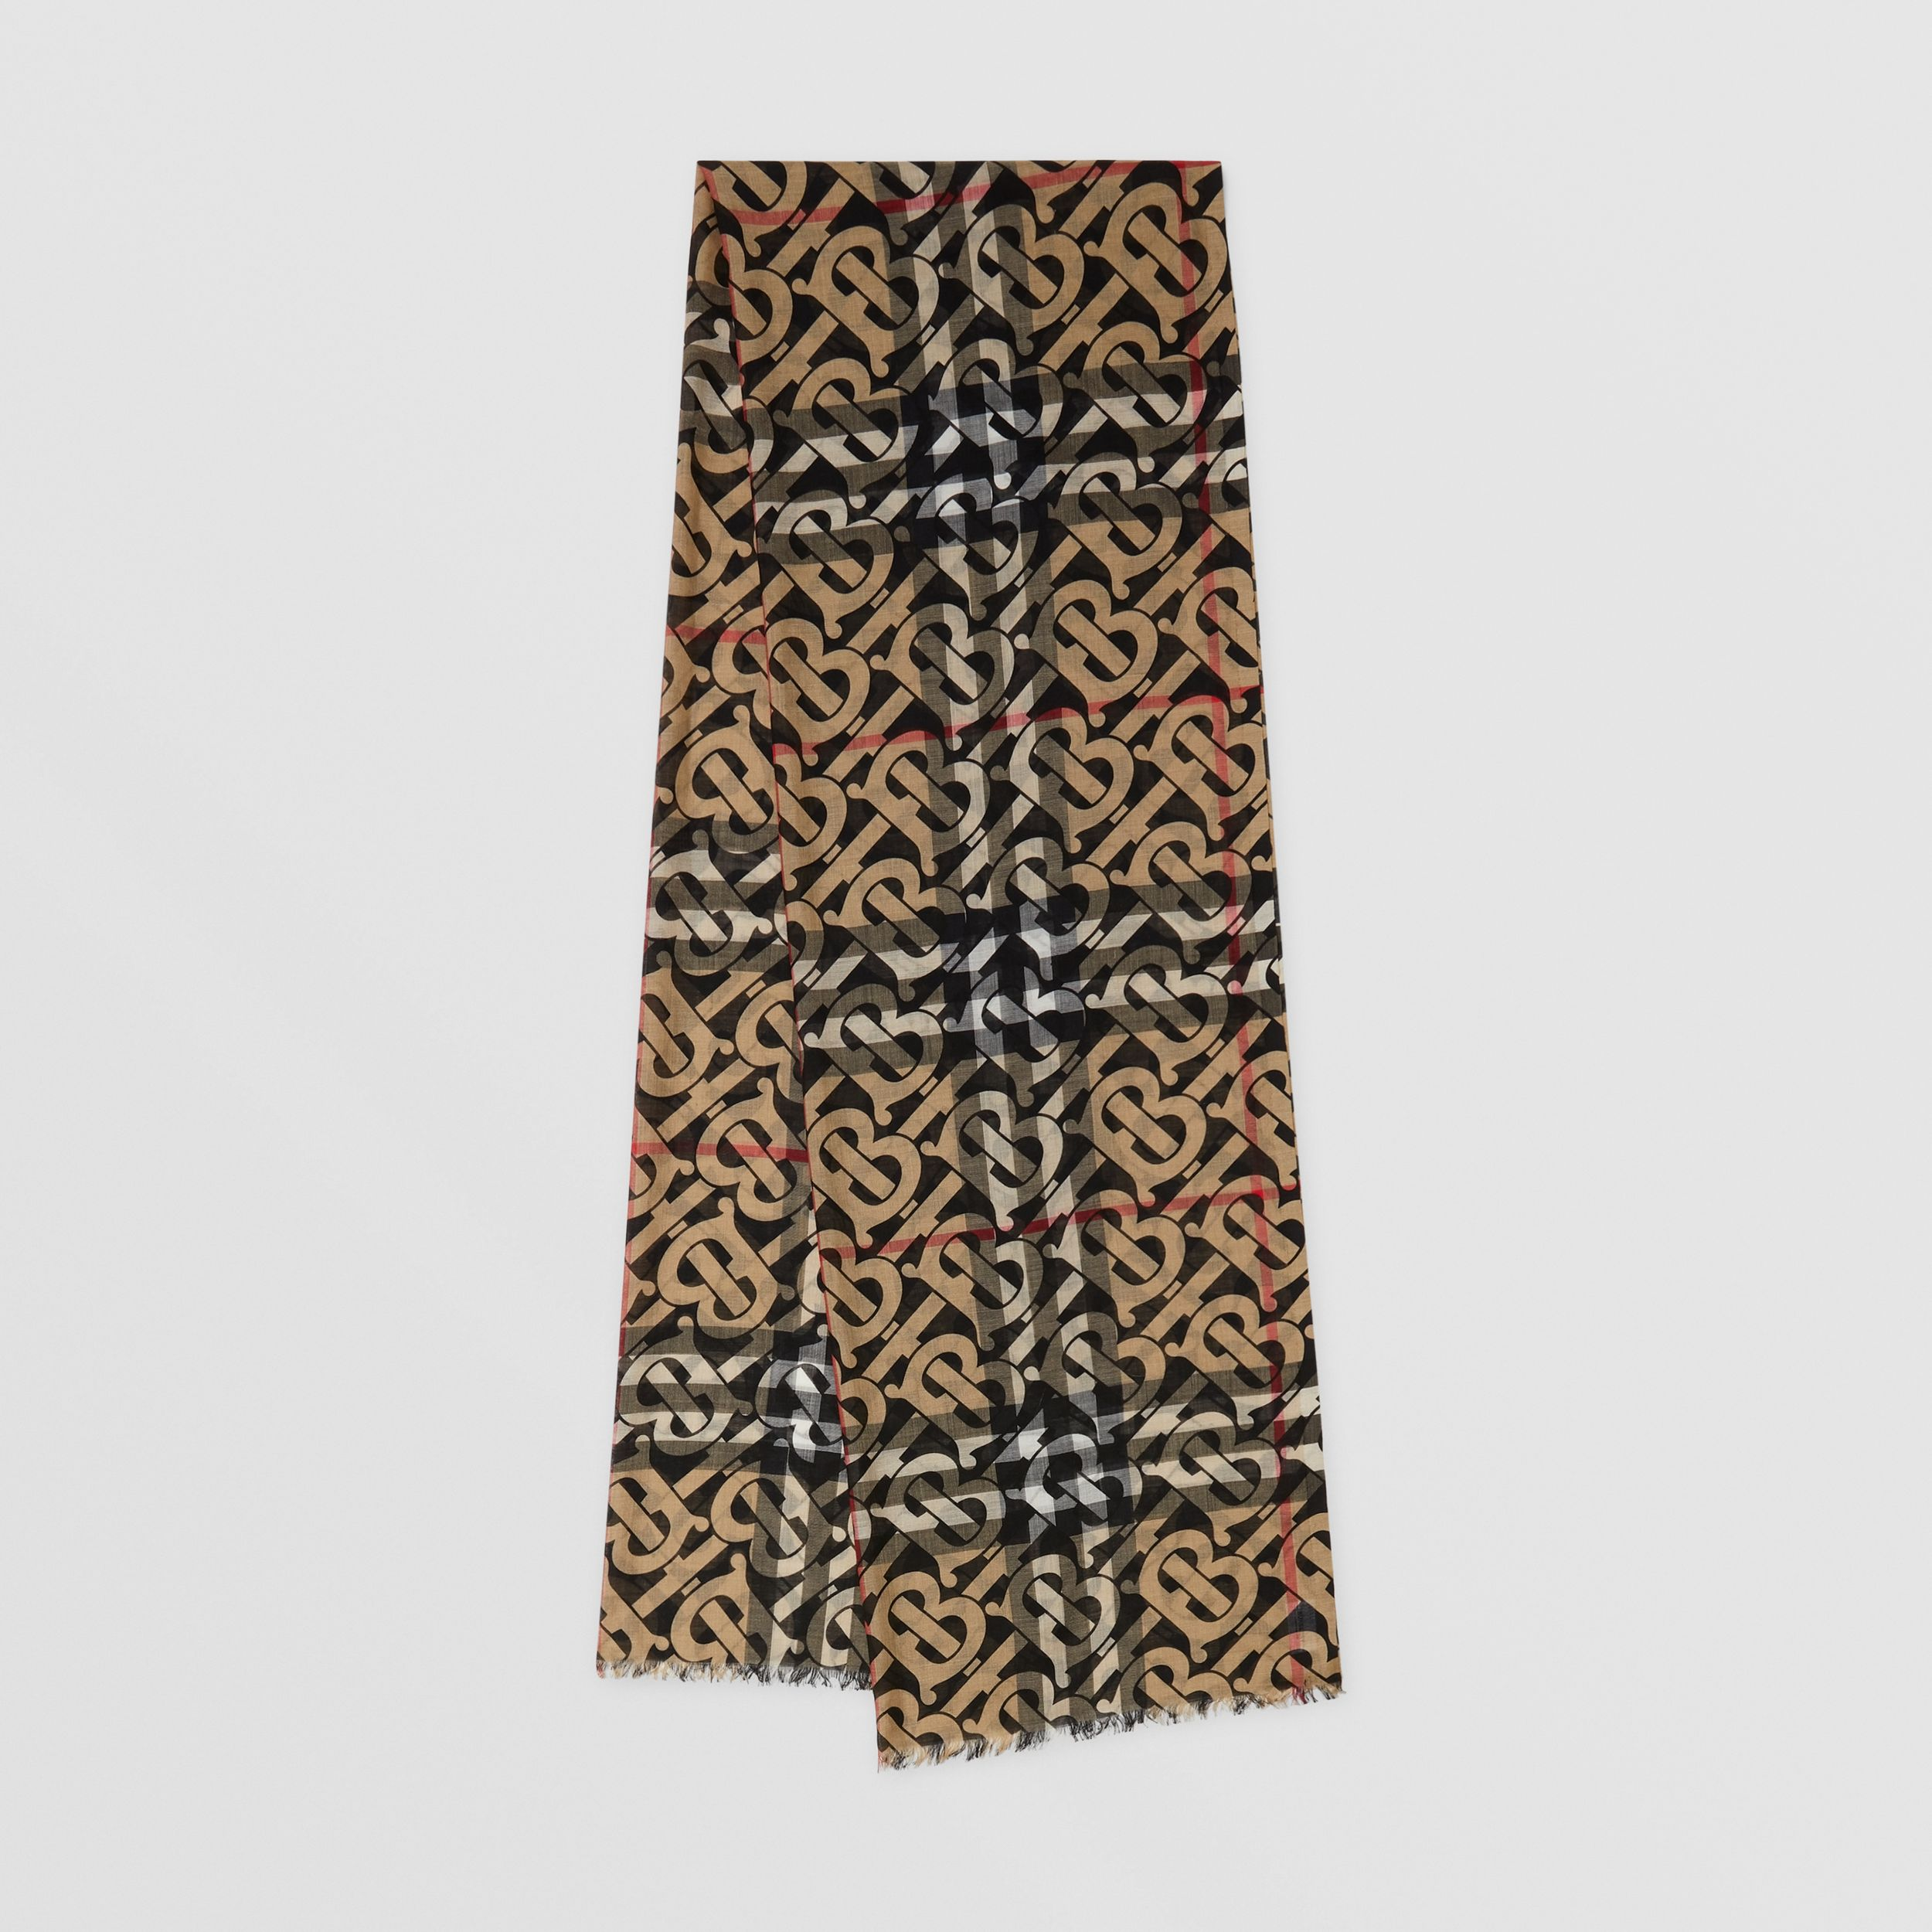 Monogram Print Lightweight Check Wool Silk Scarf in Archive Beige | Burberry - 1